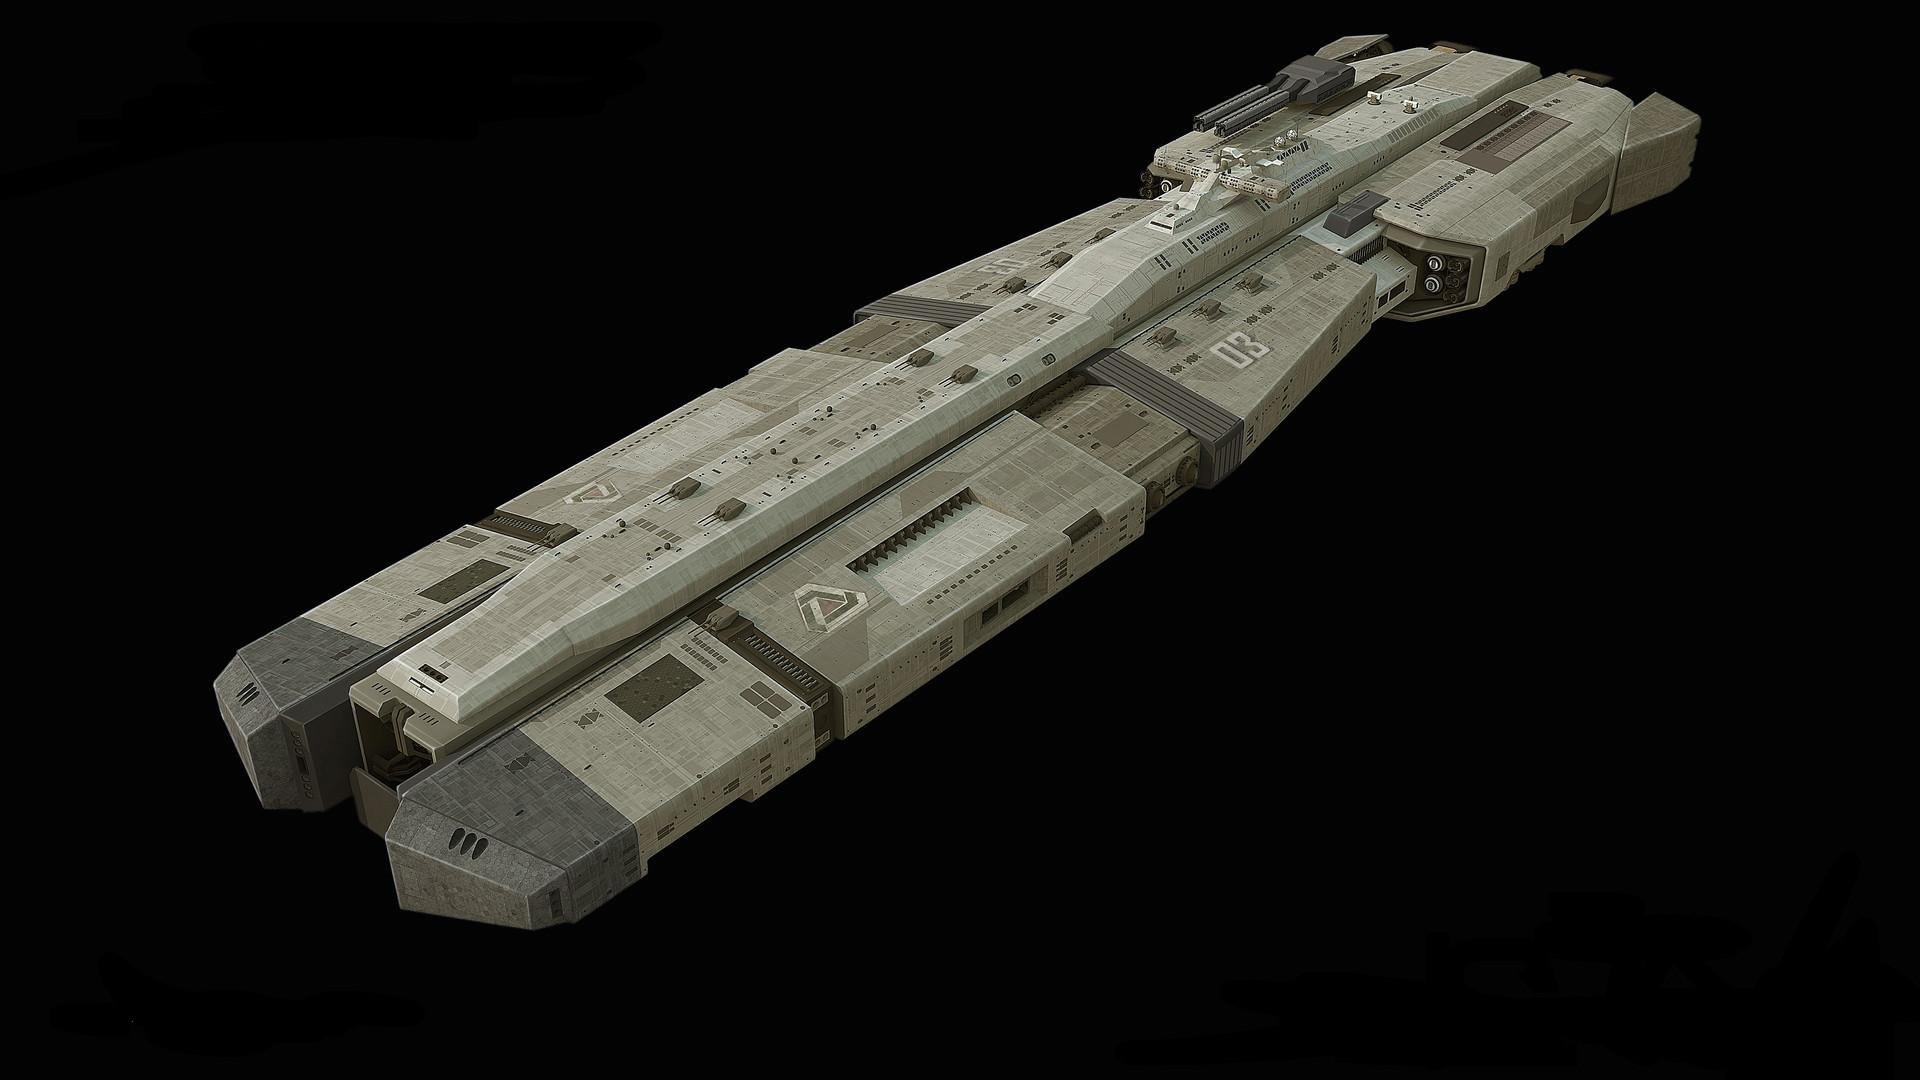 Retribution-class battlecruiser